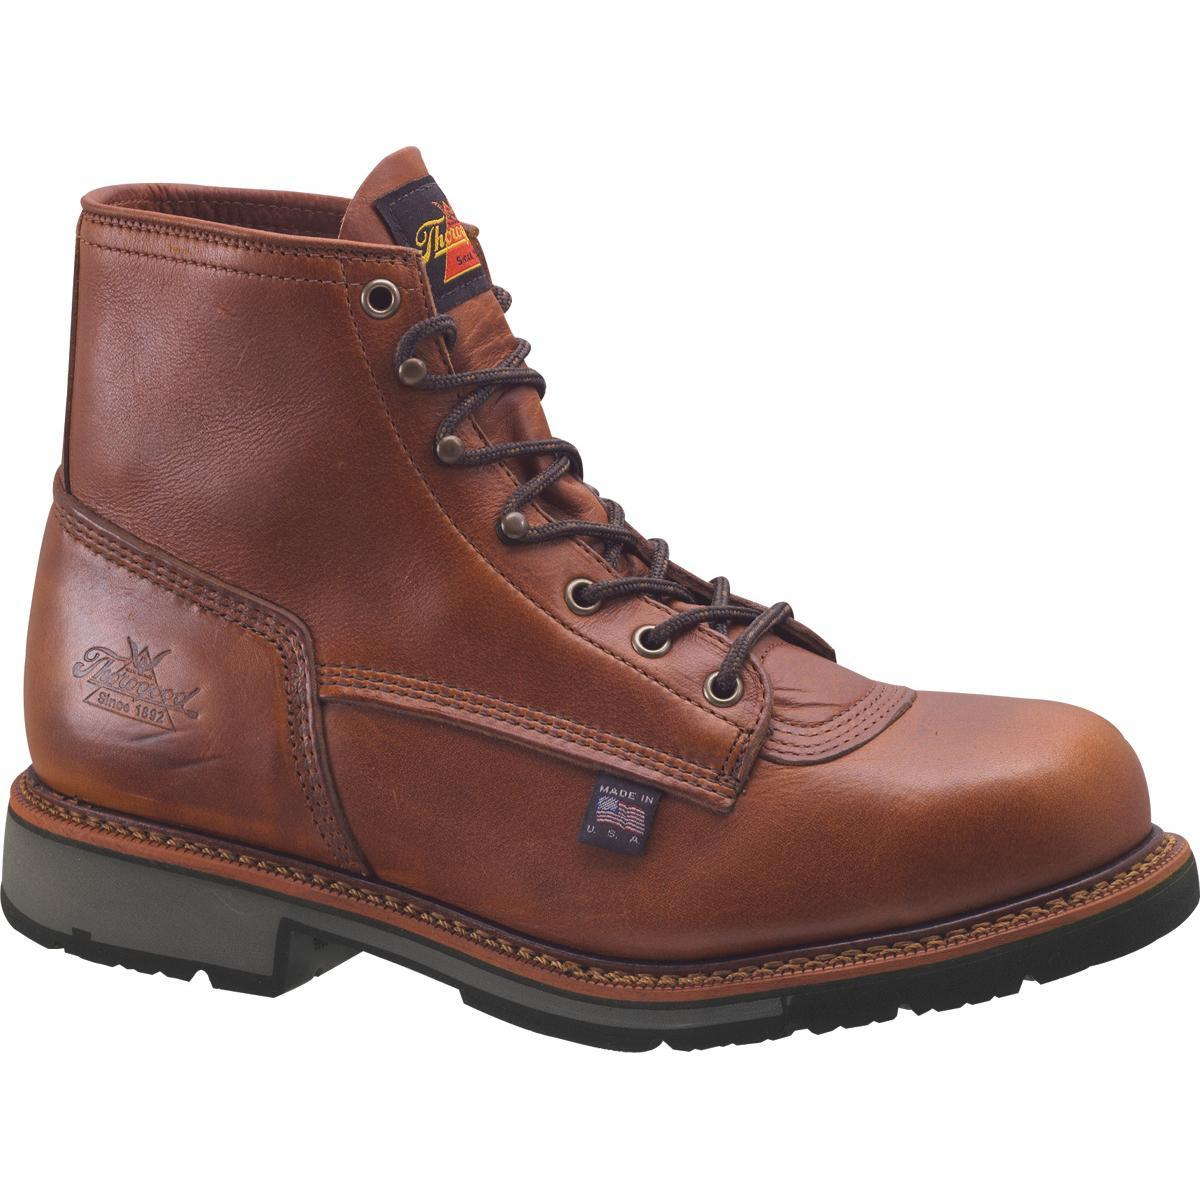 b22d50a8c1a Thorogood American Heritage Steel Toe Electrical Hazard Work Boots ...